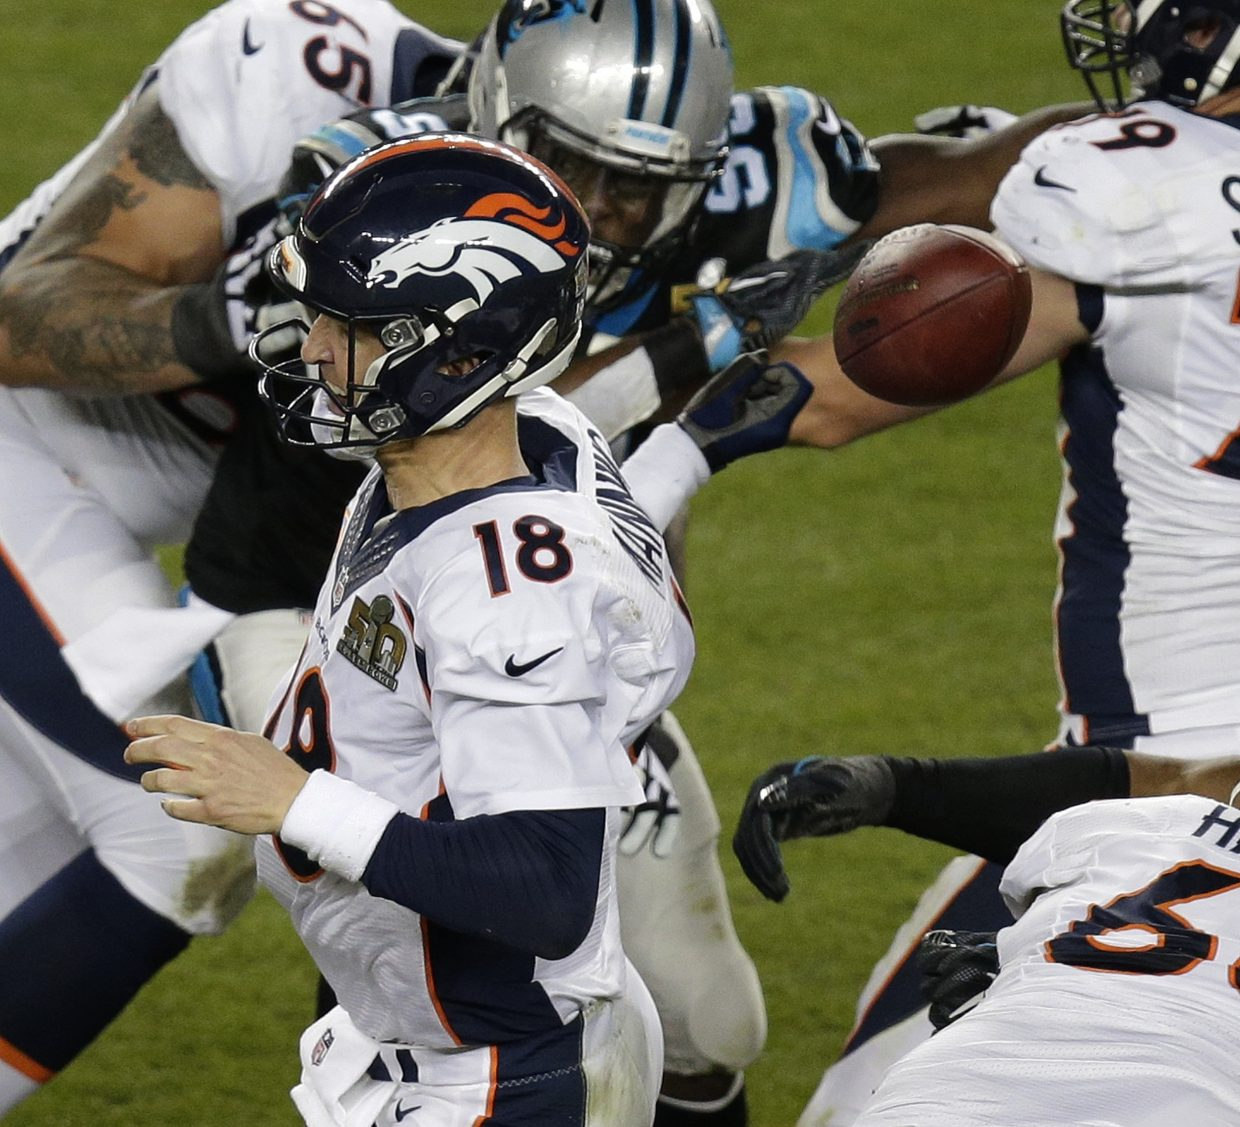 Denver Broncos' Peyton Manning (18) loses the ball during the second half of the NFL Super Bowl 50 football game against the Carolina Panthers Sunday, Feb. 7, 2016, in Santa Clara, Calif. The Panthers recovered the fumble. (AP Photo/Charlie Riedel)